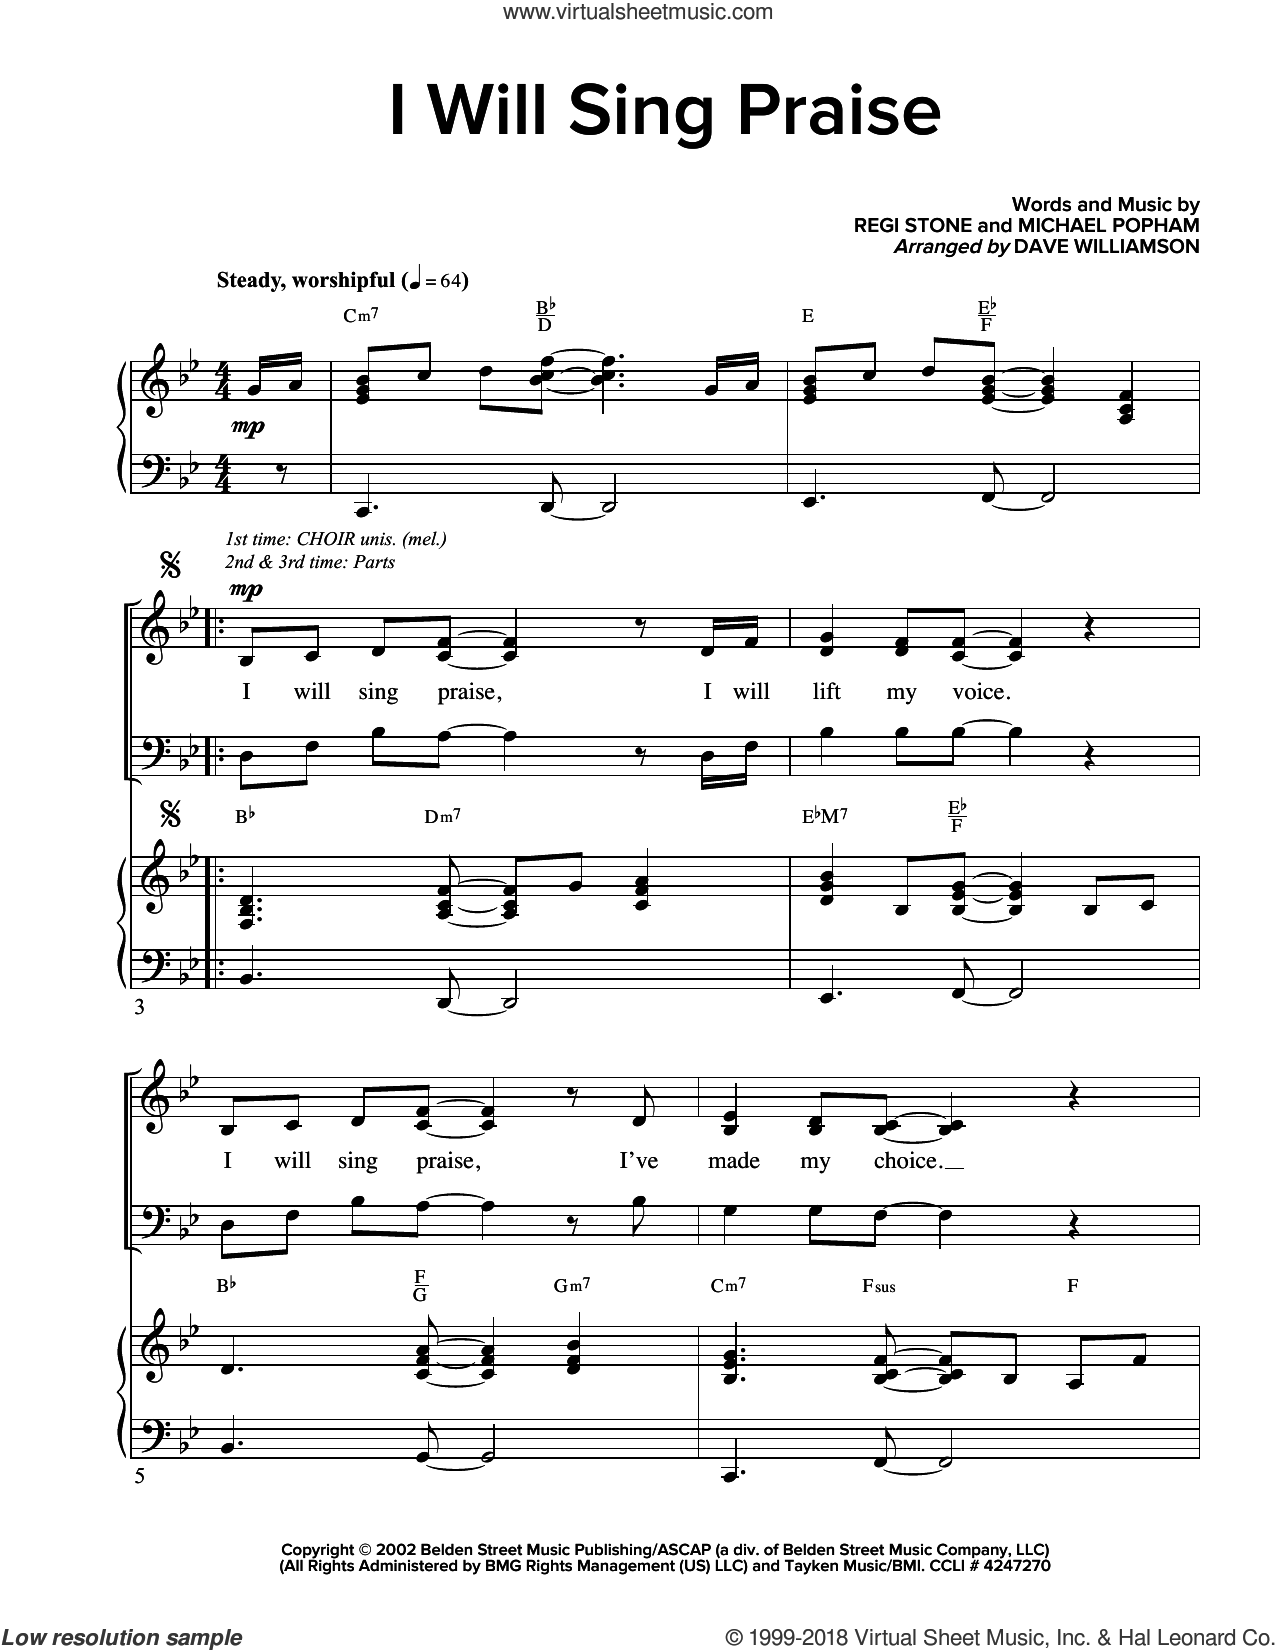 I Will Sing Praise sheet music for choir (SATB) by Regi Stone and Michael D. Popham, intermediate. Score Image Preview.